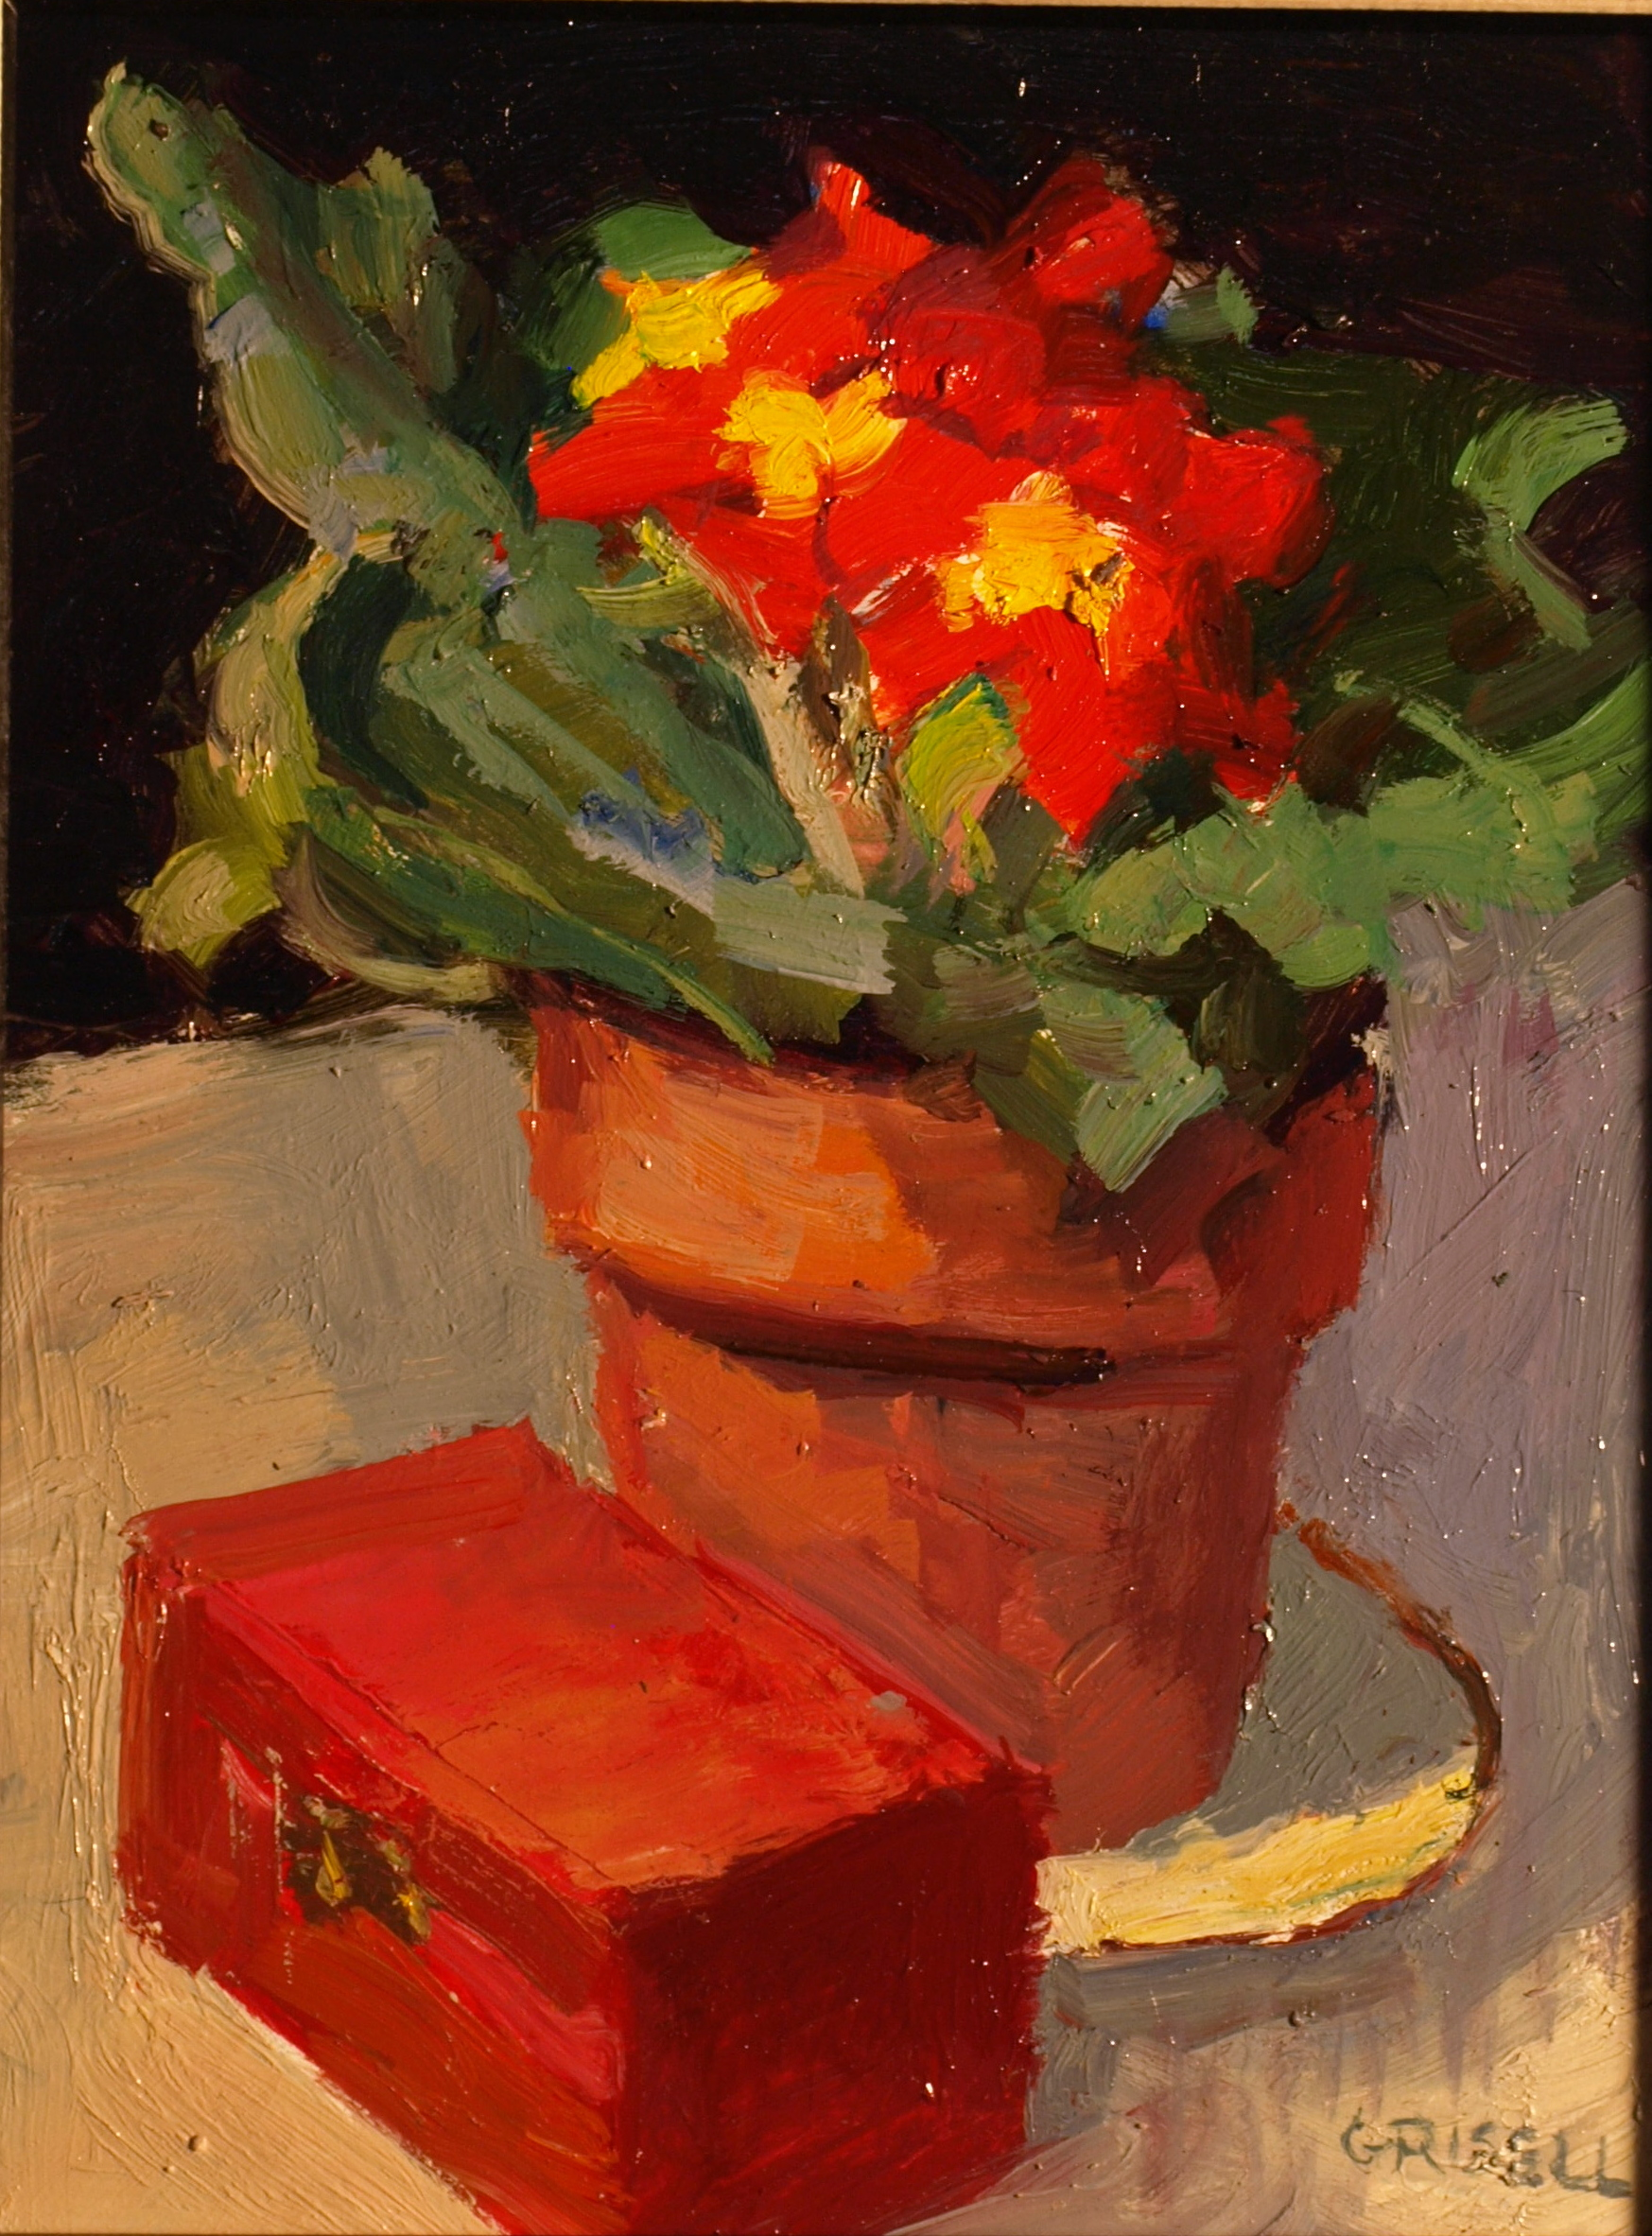 Red Primula, Oil on Panel, 10 x 8 Inches, by Susan Grisell, $200